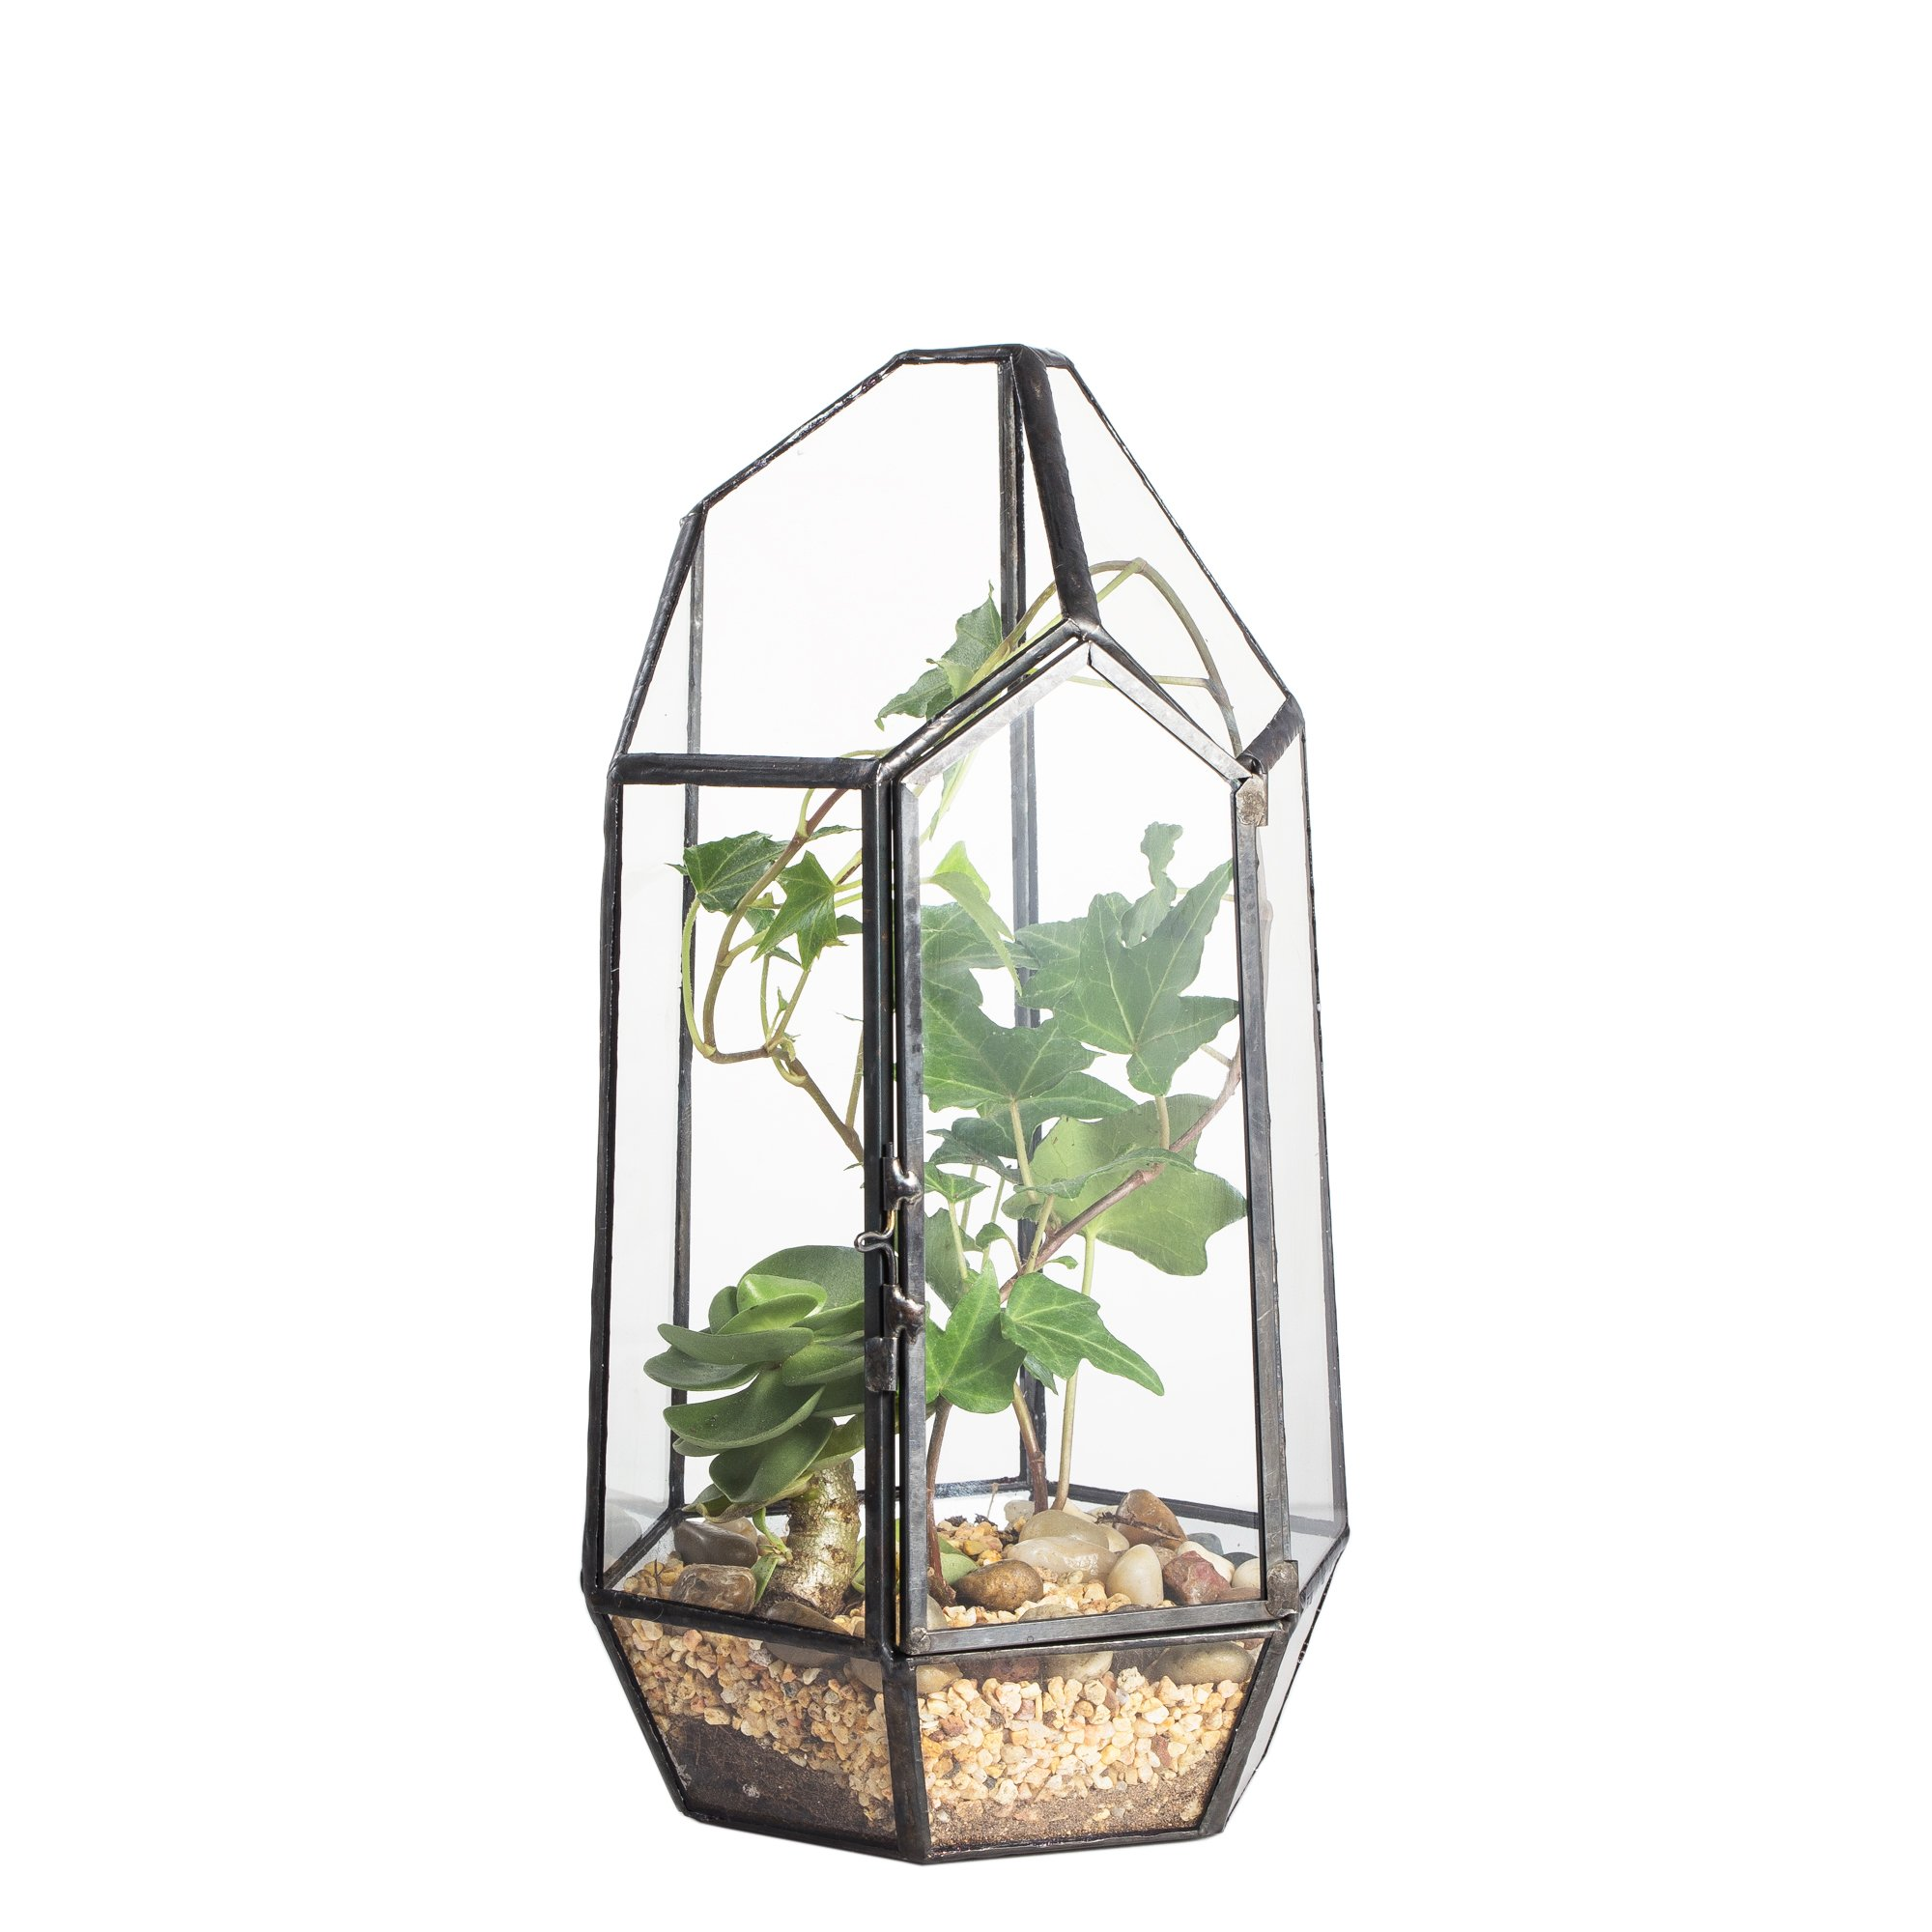 8.66'' Height Closed Irregular Glass Terrarium with Door Succulent Planter Geometric Flower Plant Pot Tabletop Small Bonsai Reptile Container Desktop Display Box Candle Holder Gift by NCYP